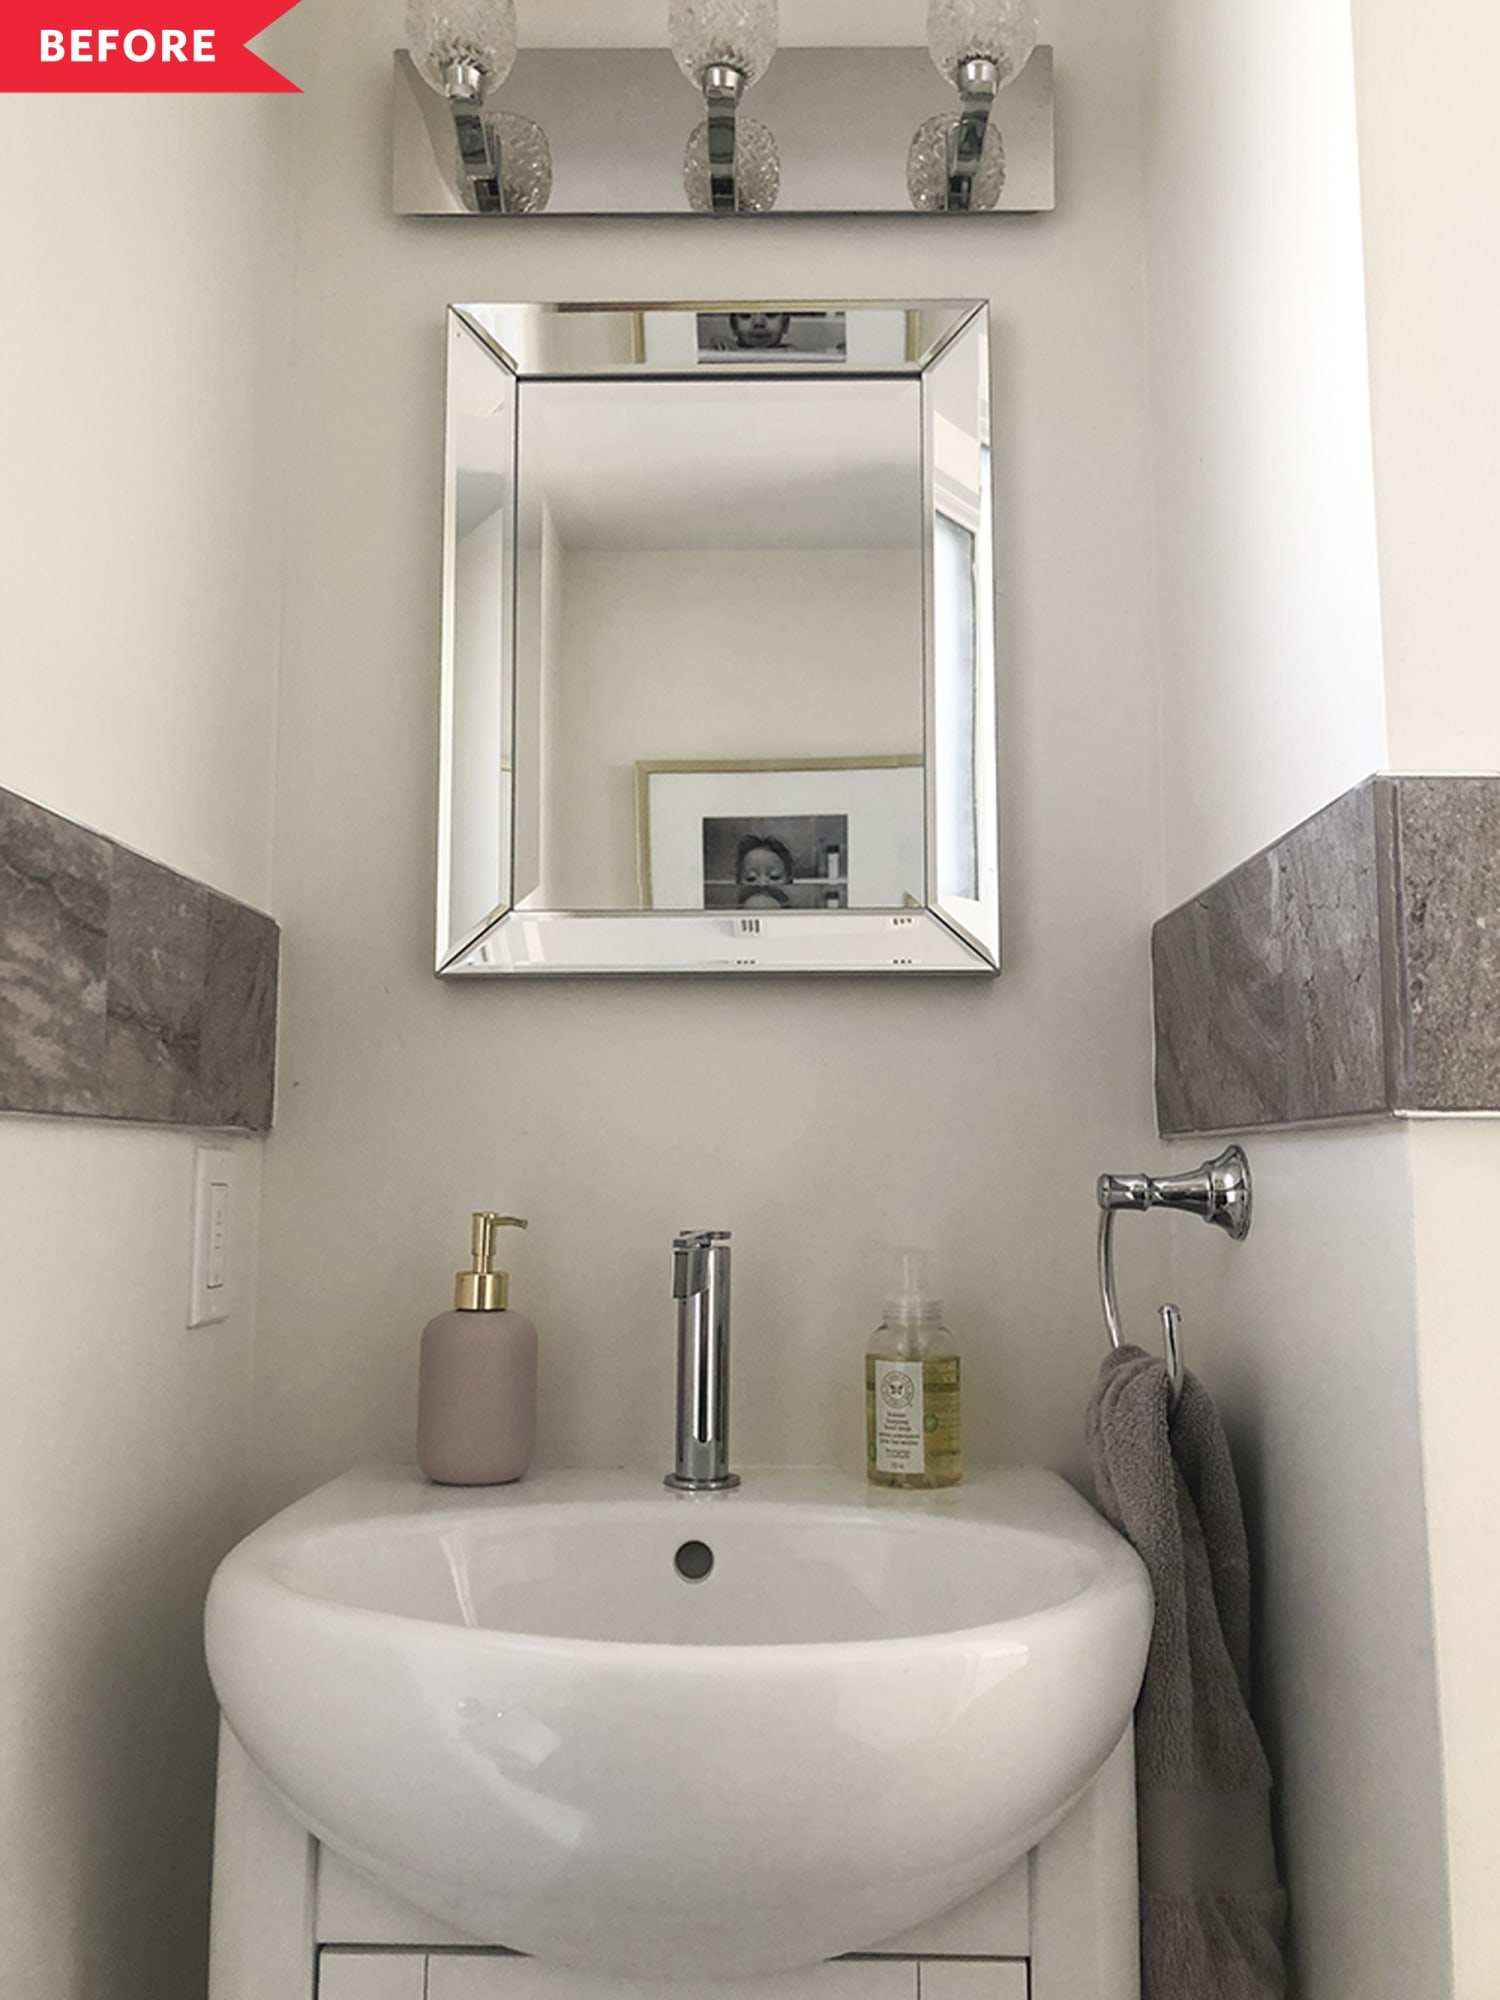 Before & After: This Dated Powder Room Makeover Is Fantastic and Full of Ideas for Renters